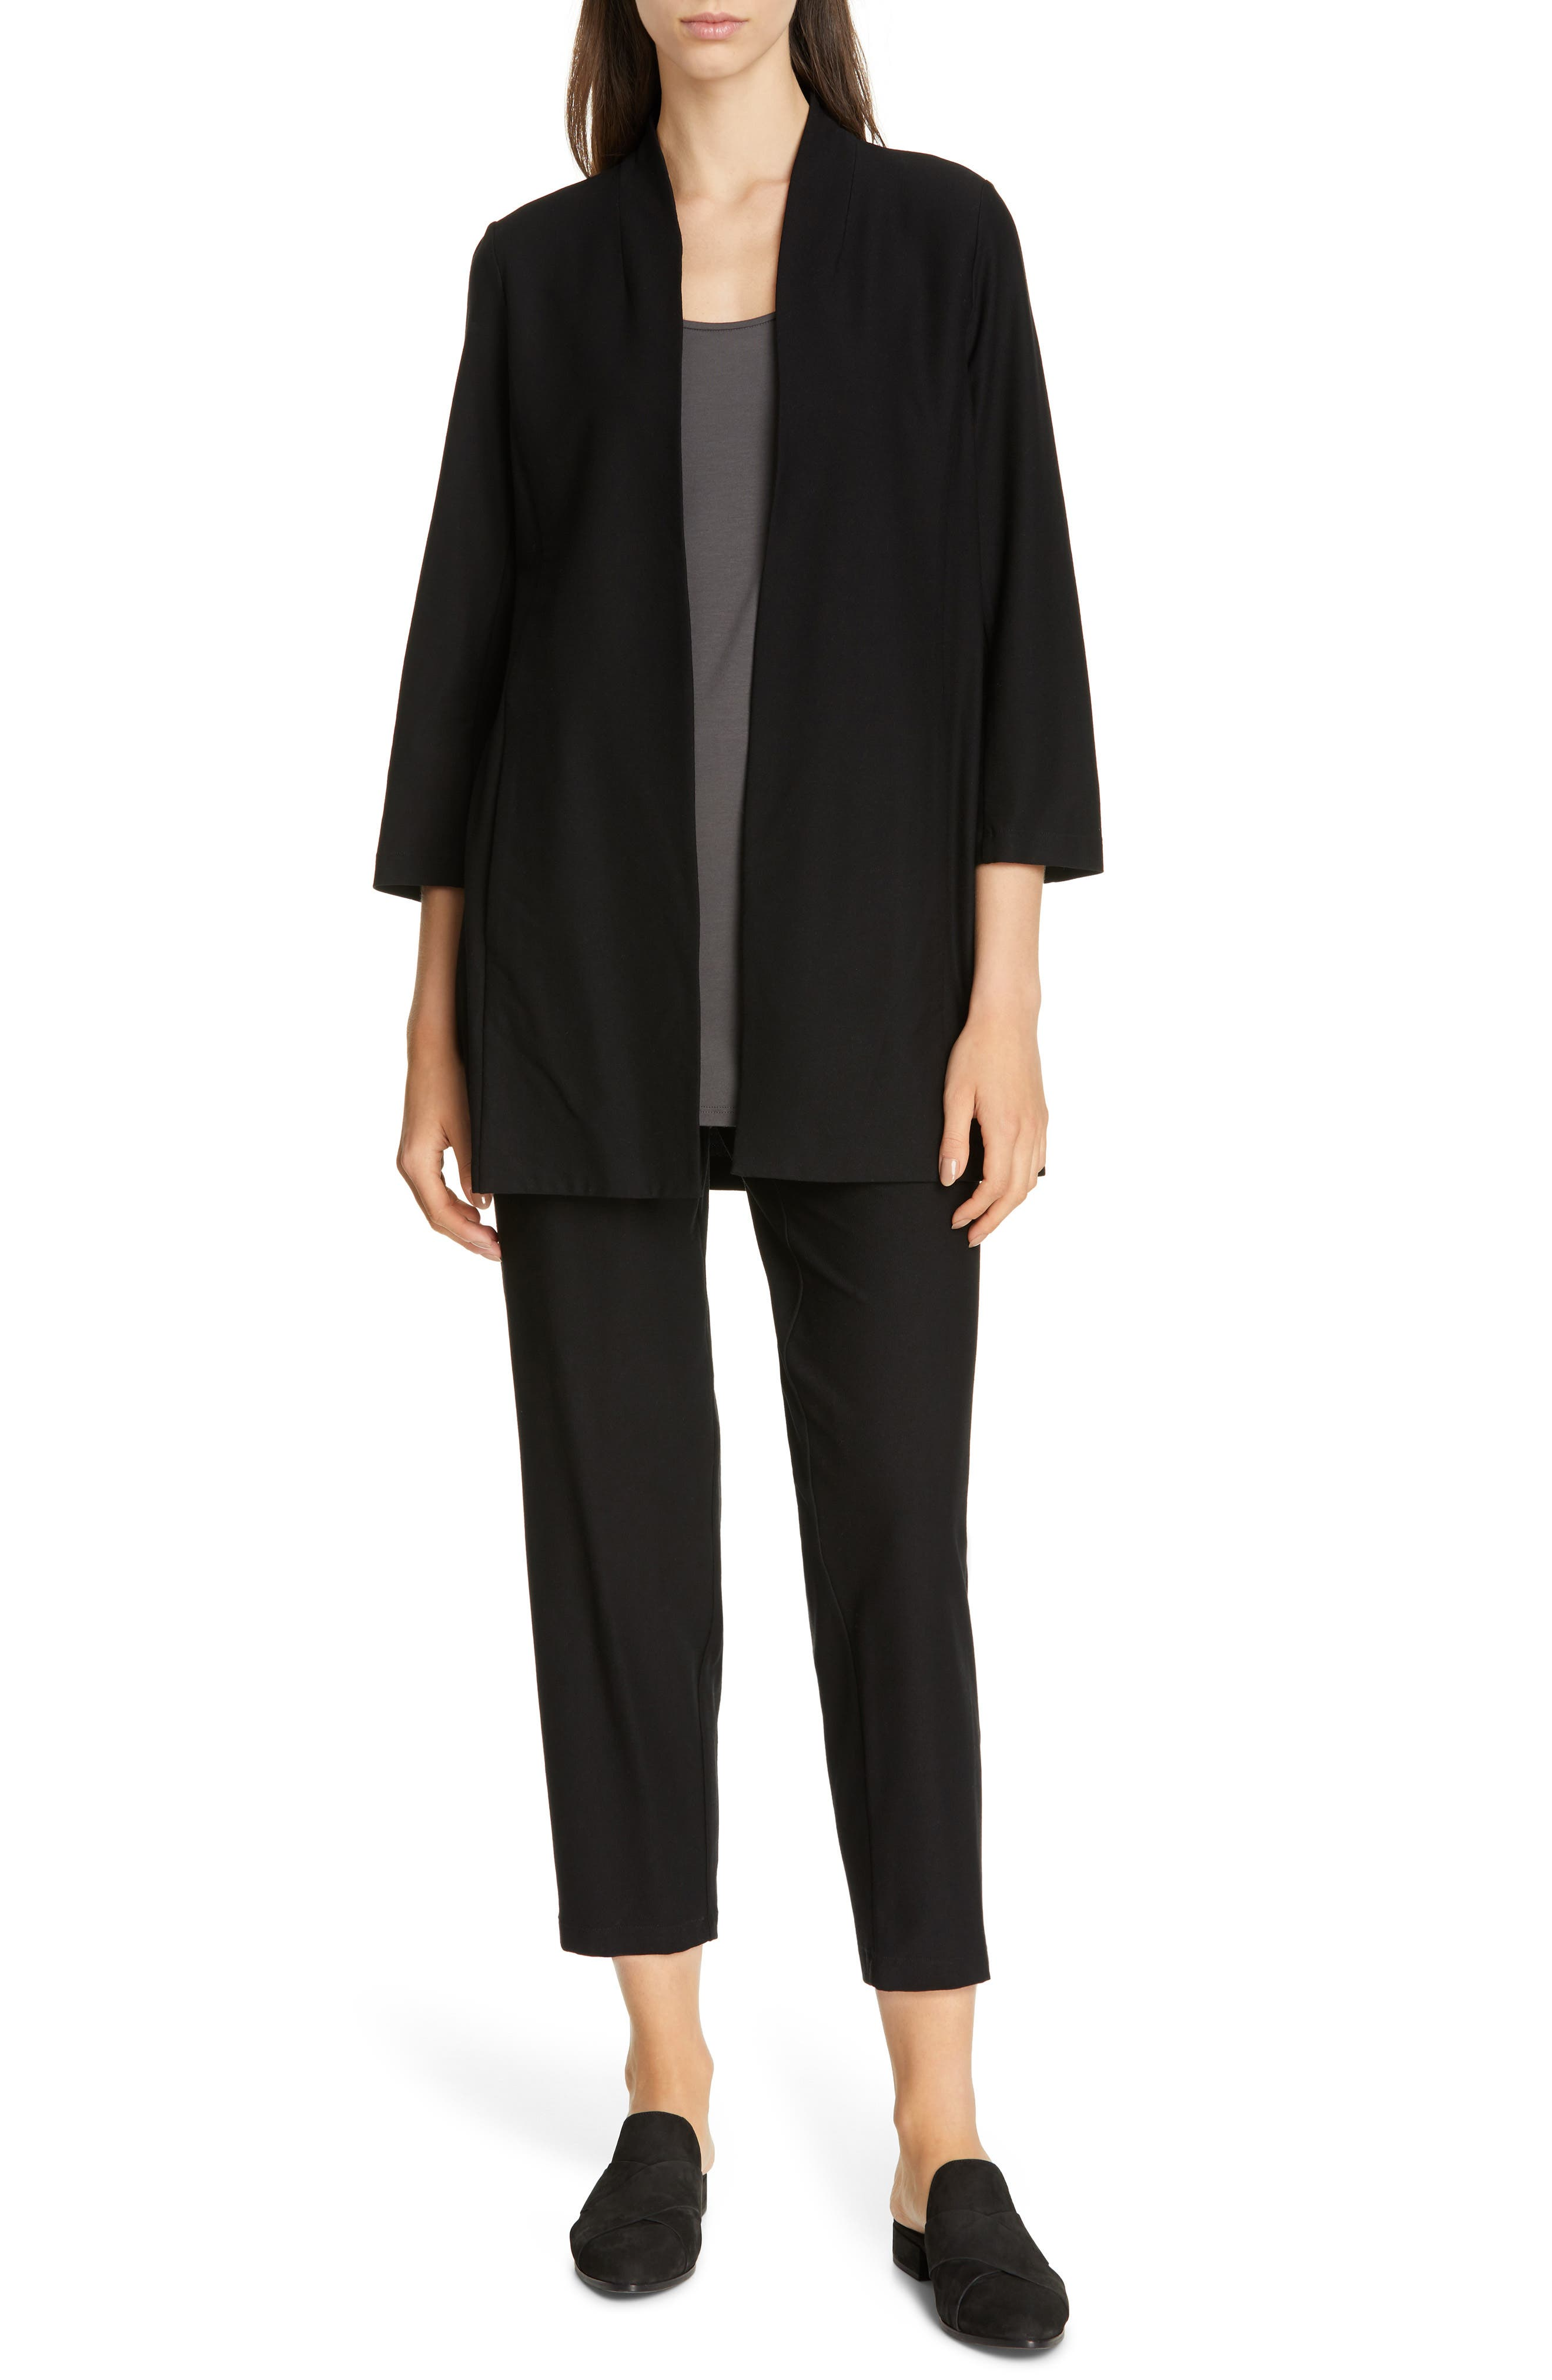 EILEEN FISHER, Tapered Ankle Pants, Alternate thumbnail 8, color, BLACK